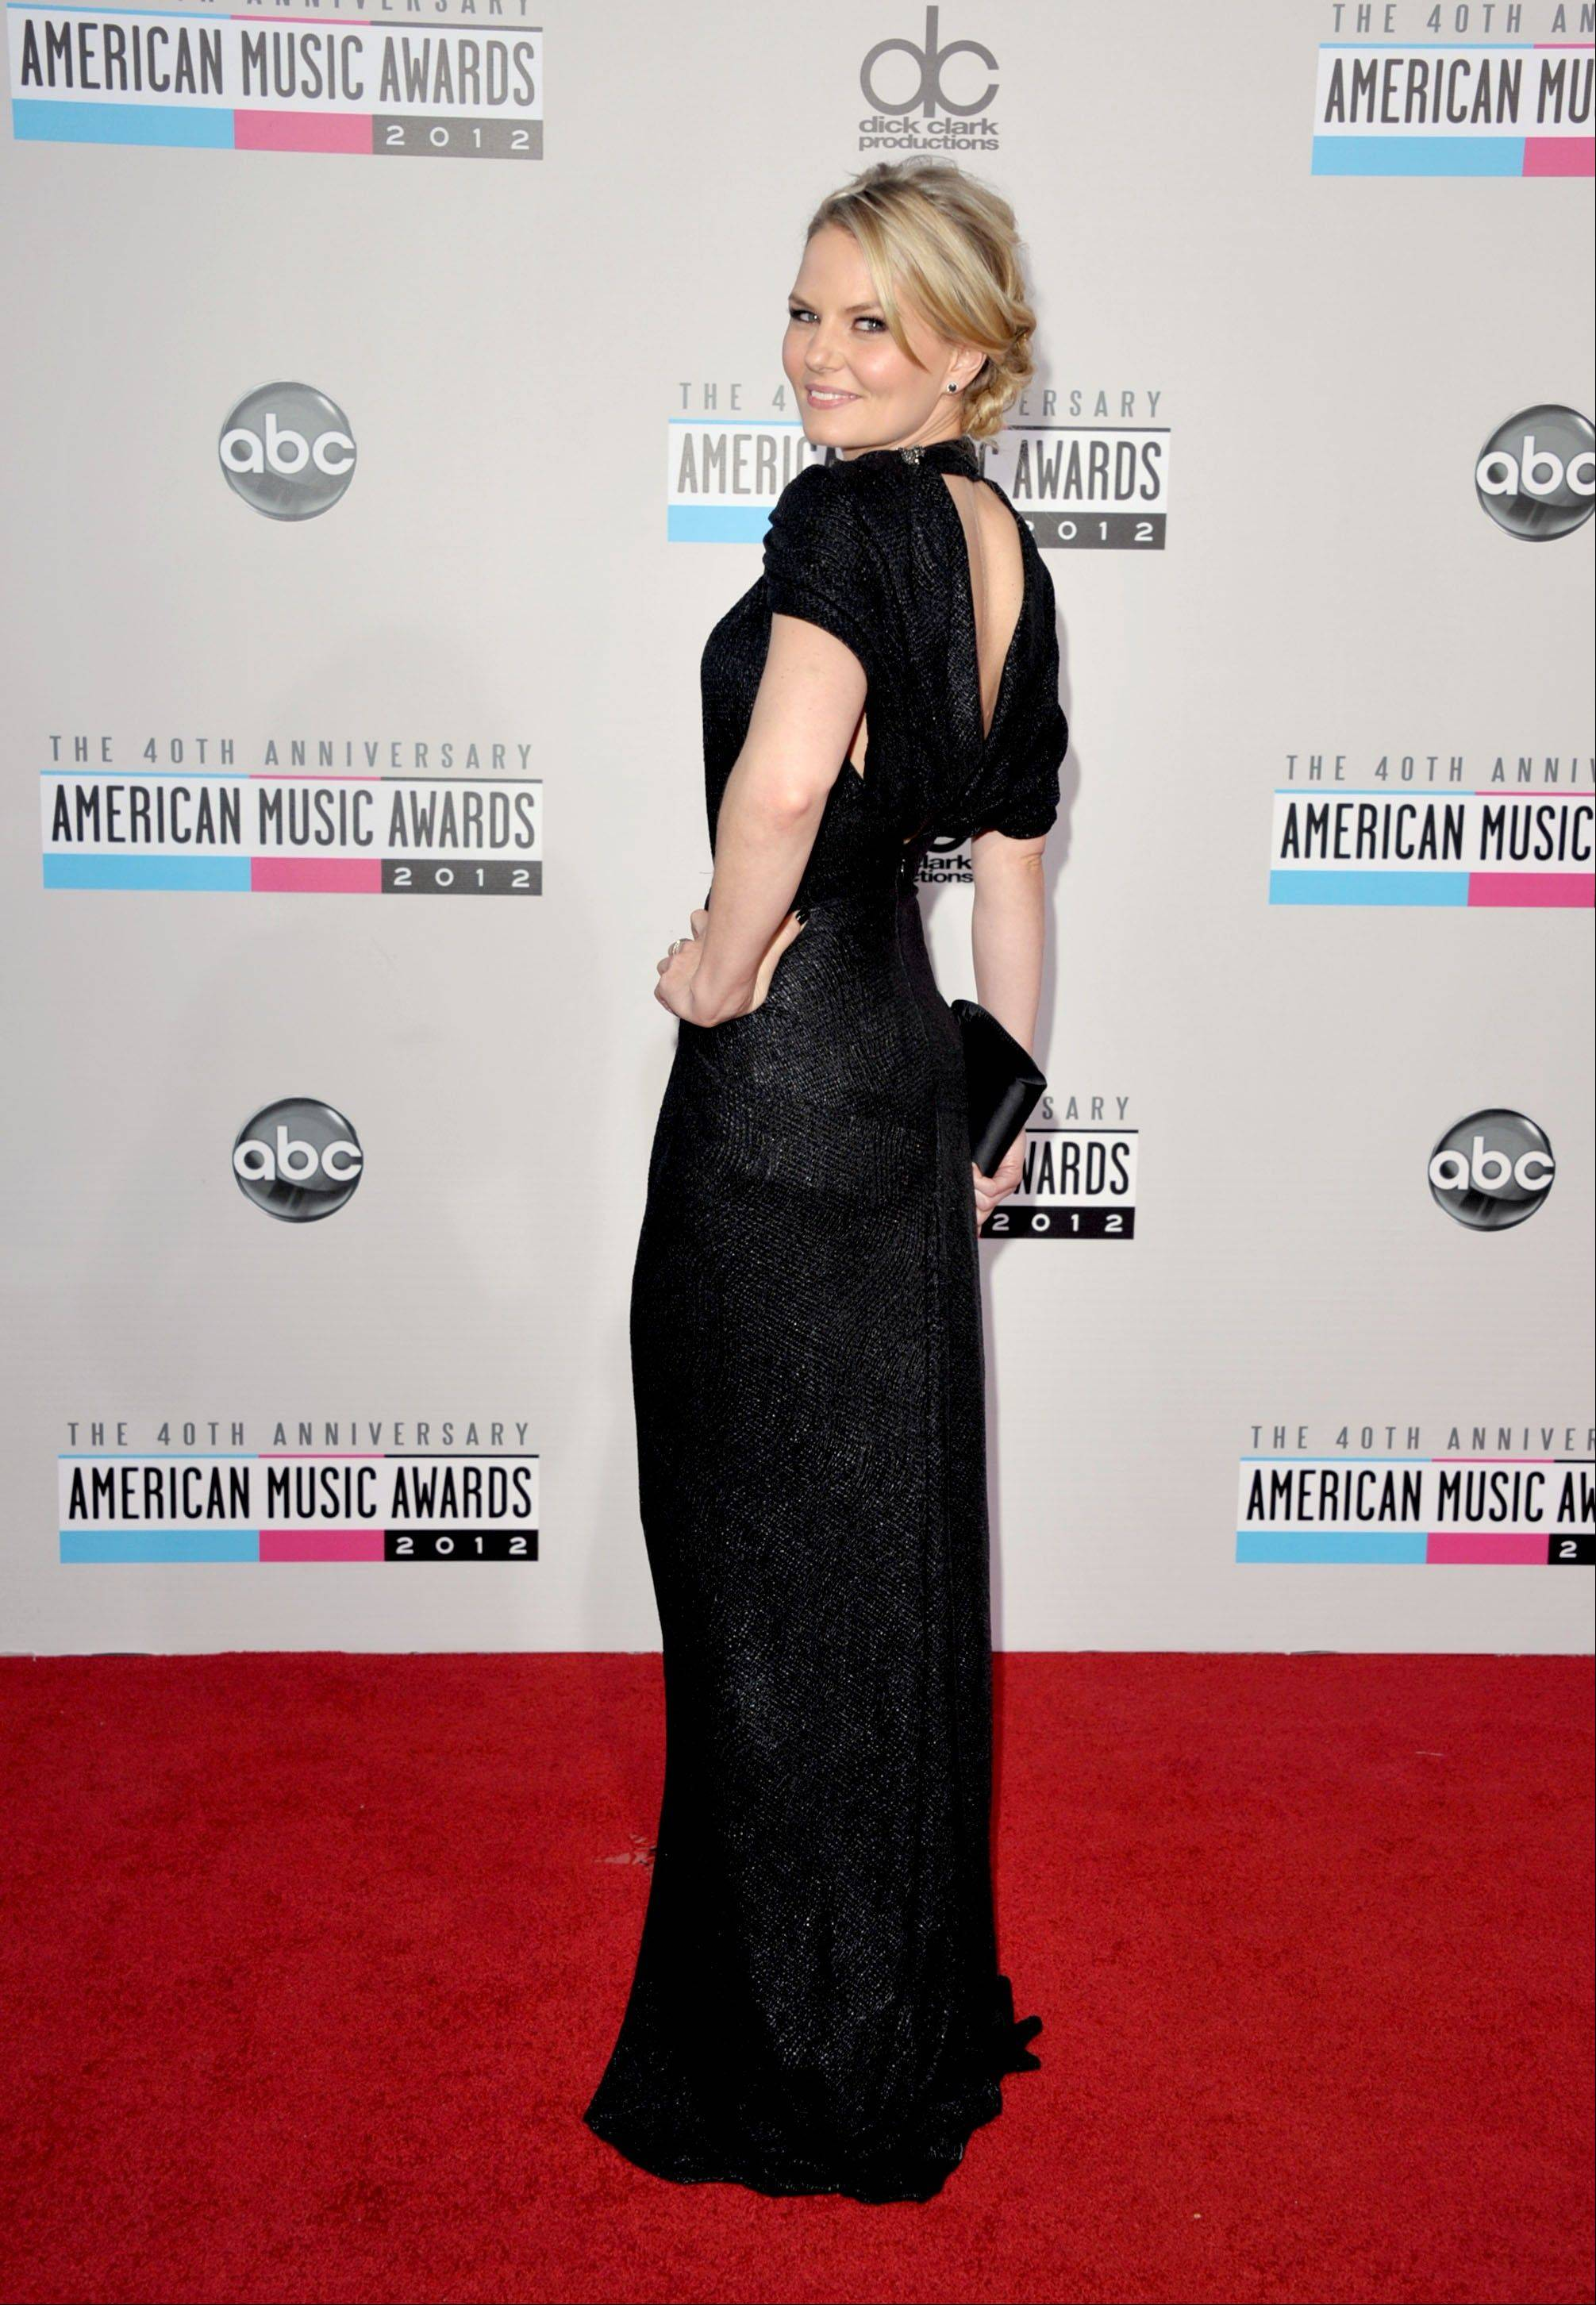 """Once Upon a Time"" star Jennifer Morrison arrives at the 40th Anniversary American Music Awards."